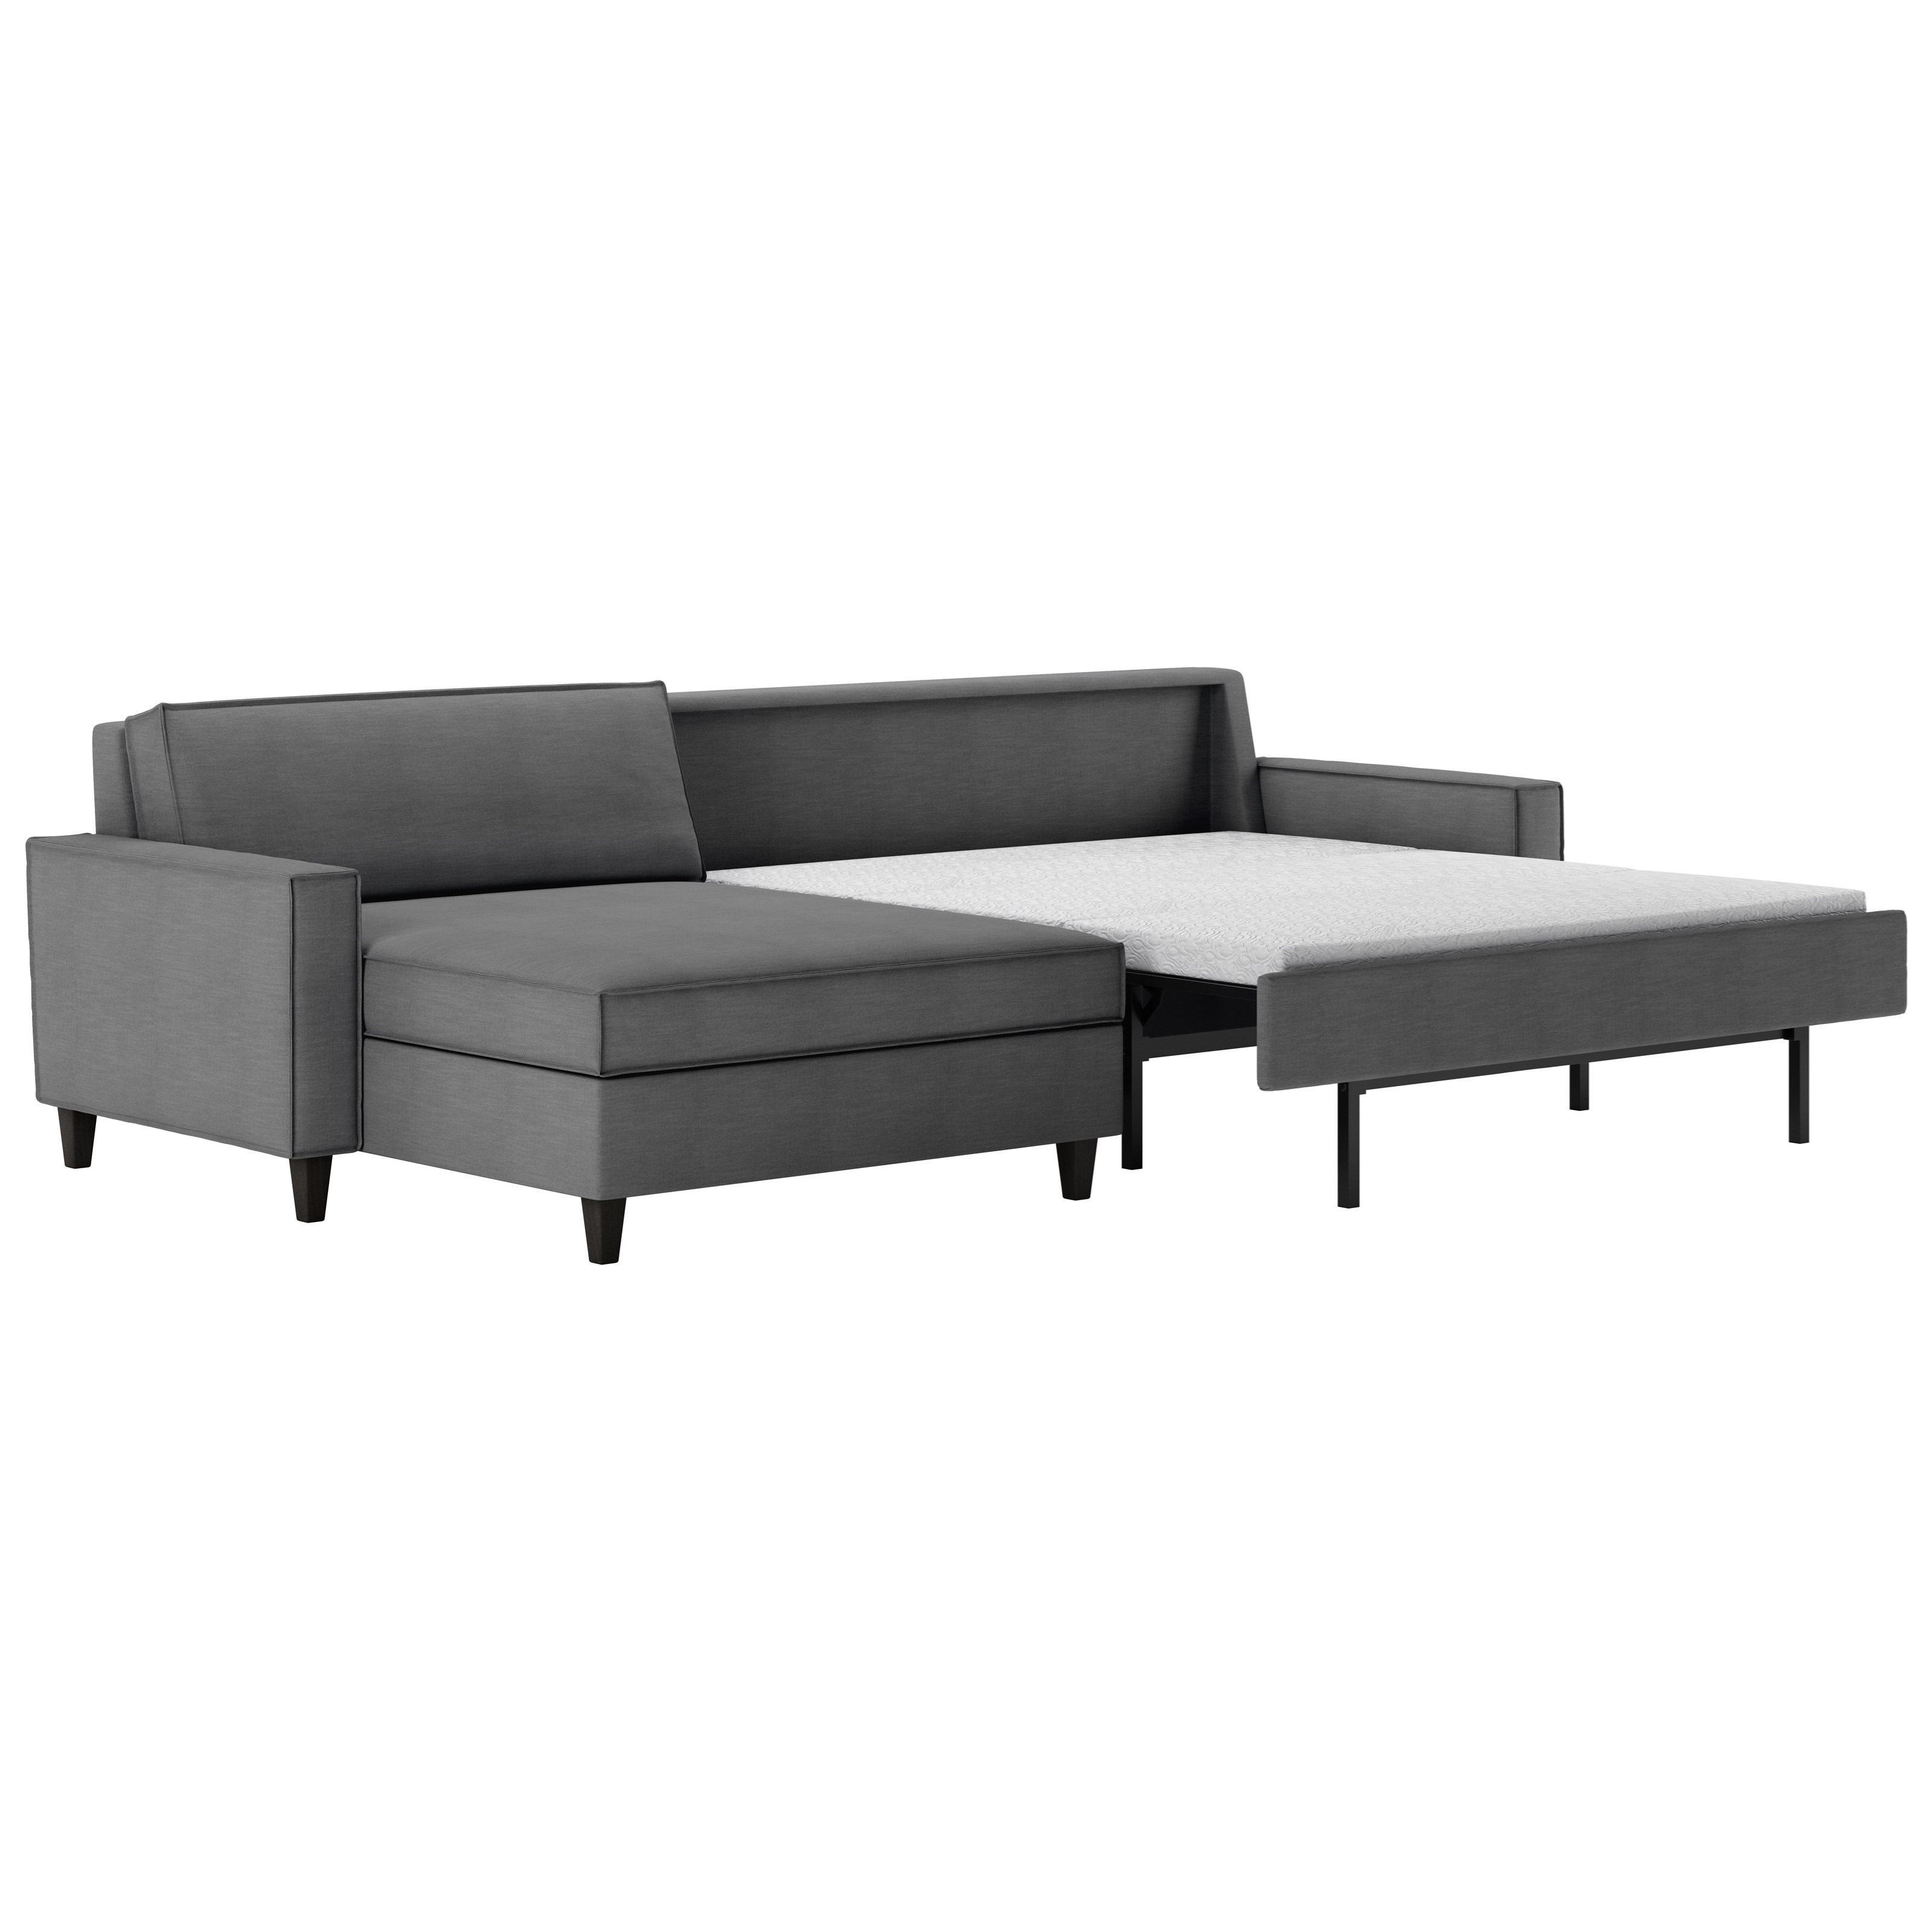 Mitchell 2 Pc Sectional Sofa by American Leather at Saugerties Furniture Mart